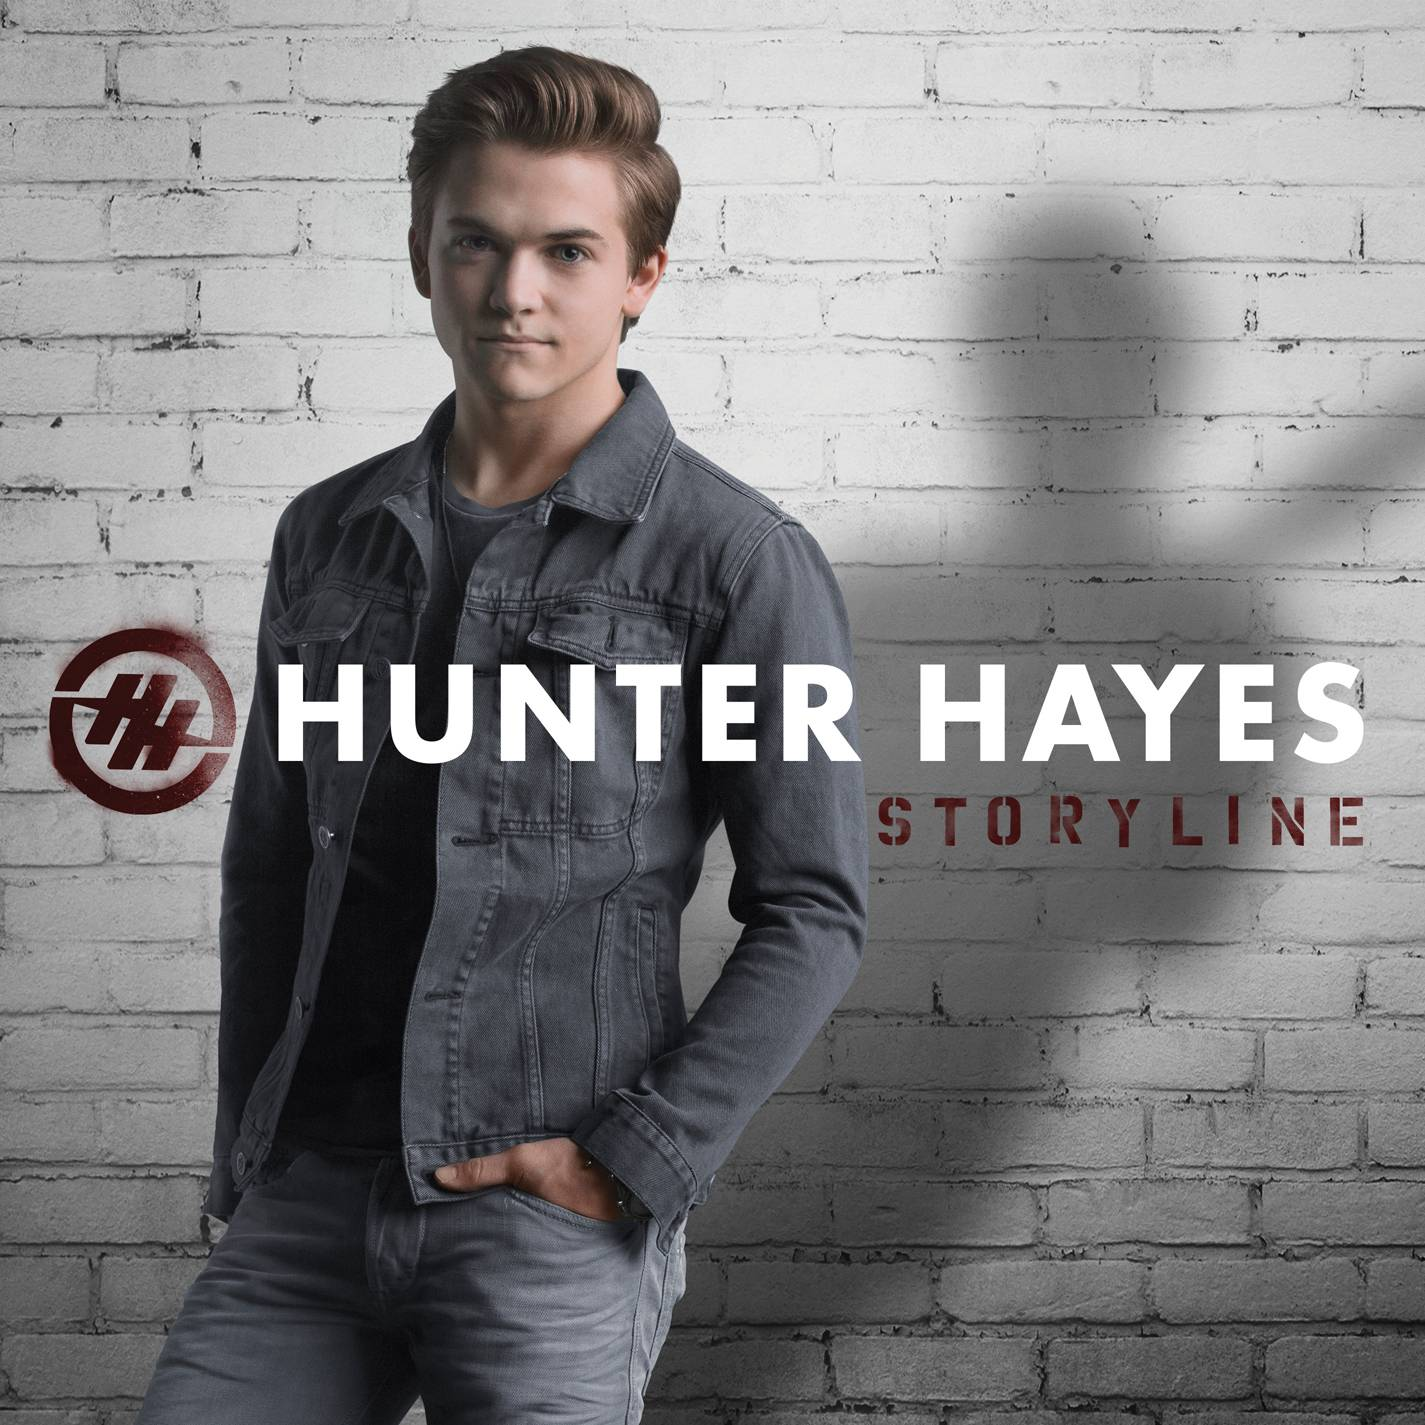 """Storyline"" is the second release from Hunter Hayes."